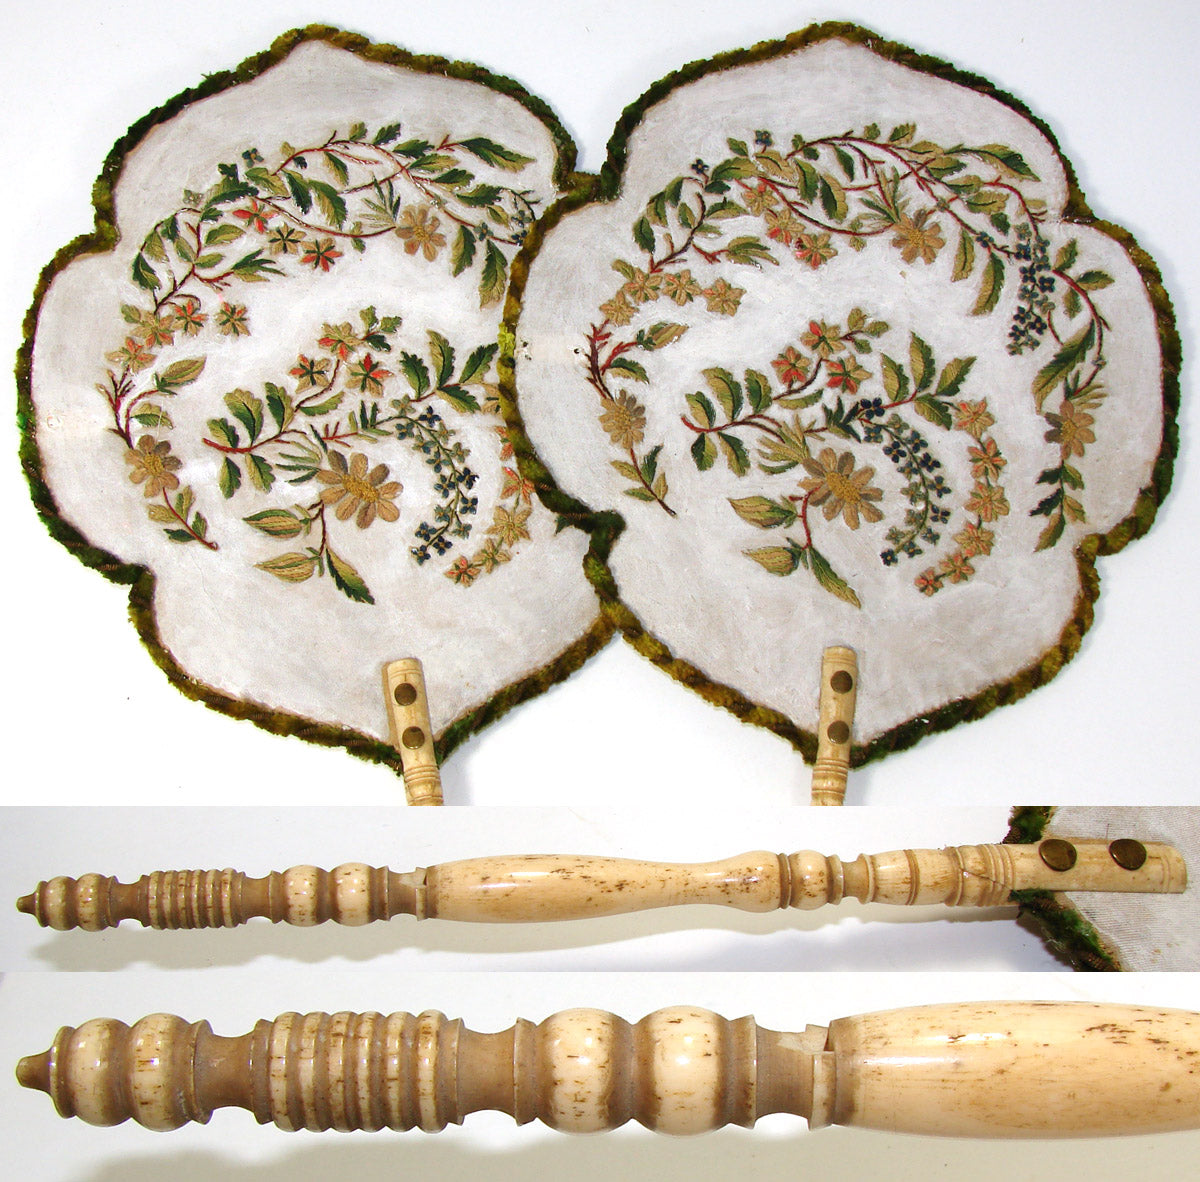 Antique Victorian Era Face Screen PAIR, Floral & Foliate Embroidery, Turned Handles